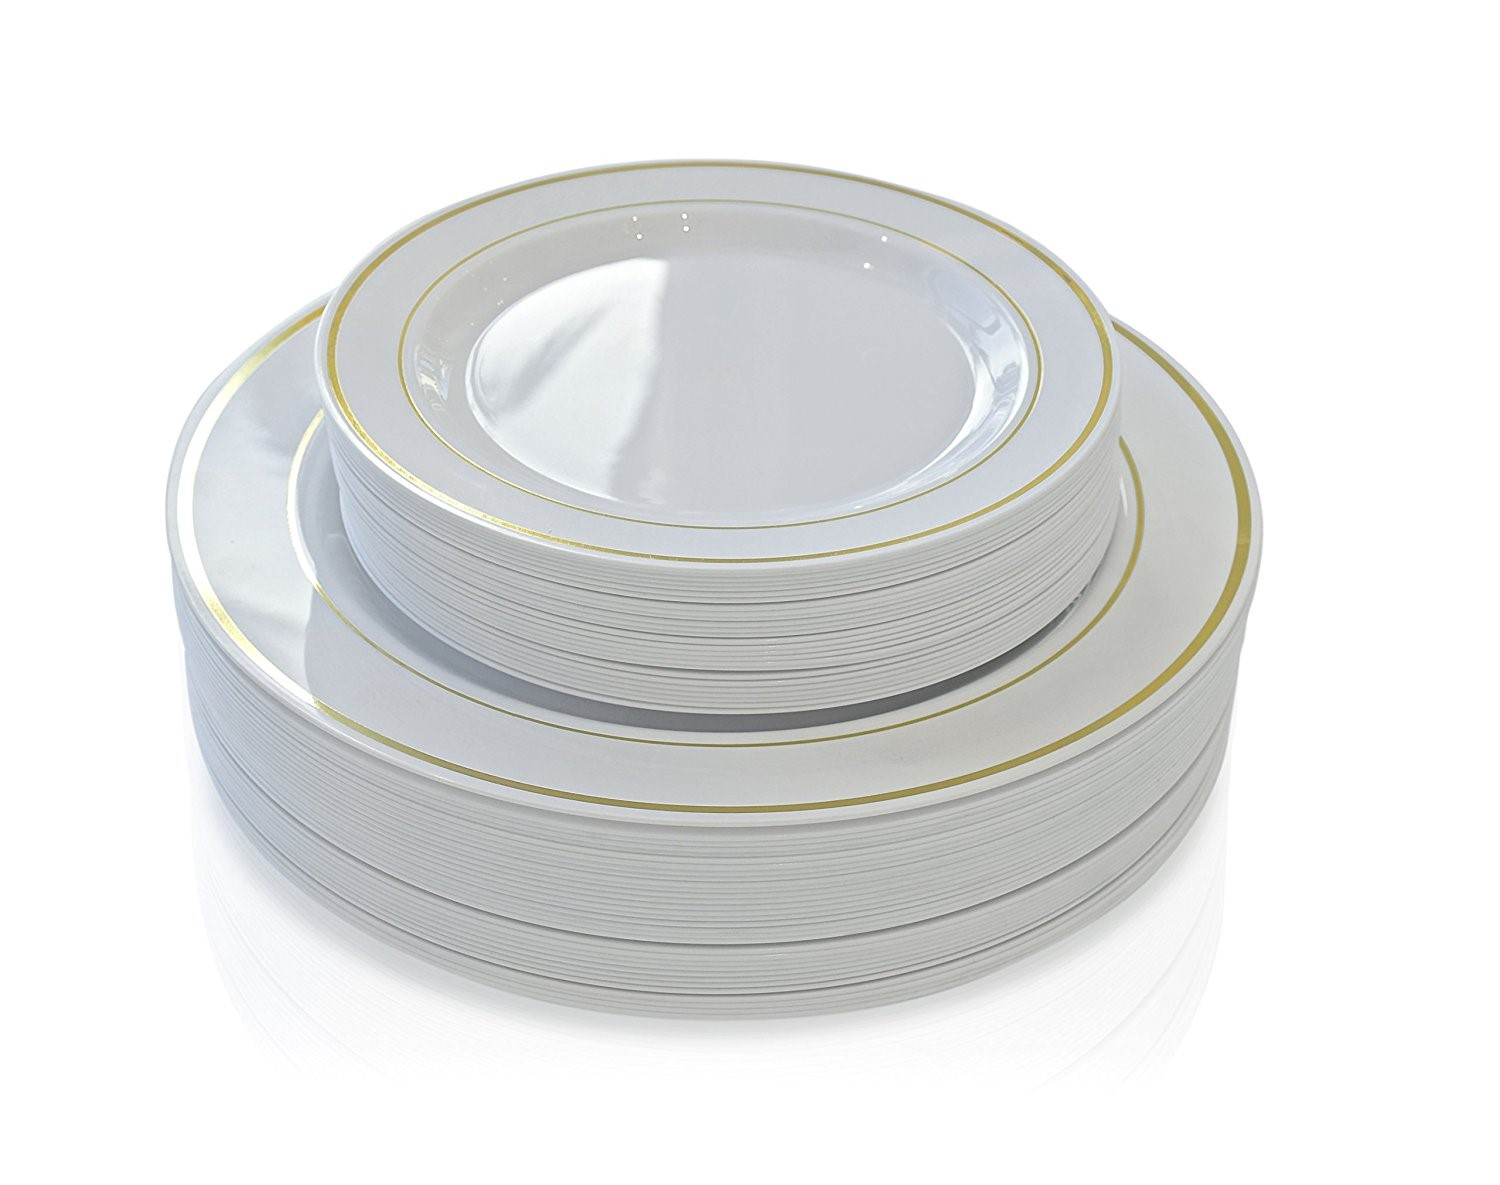 White Plastic Plates With Gold Rim To Taste Themes